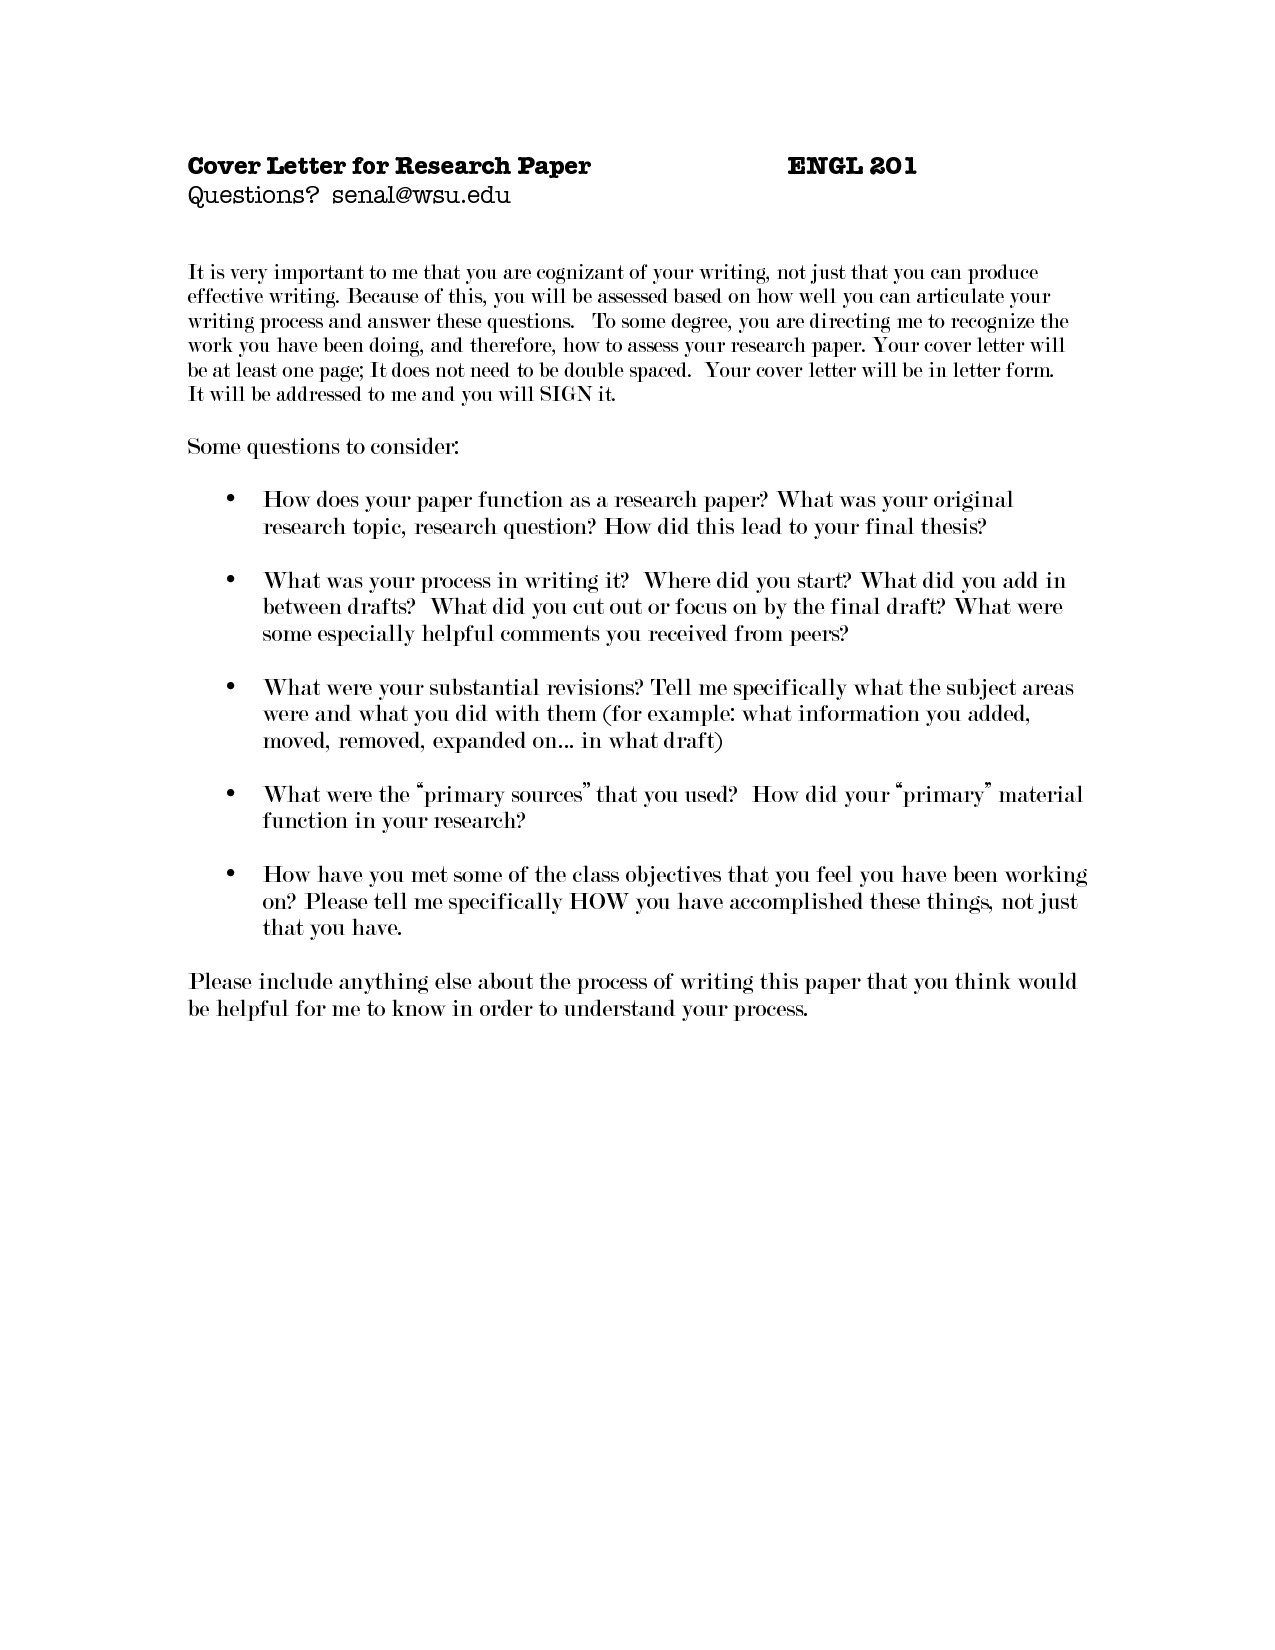 How to Make A Cover Letter for A Paper Cover Letter for Research Paper the Letter Sample